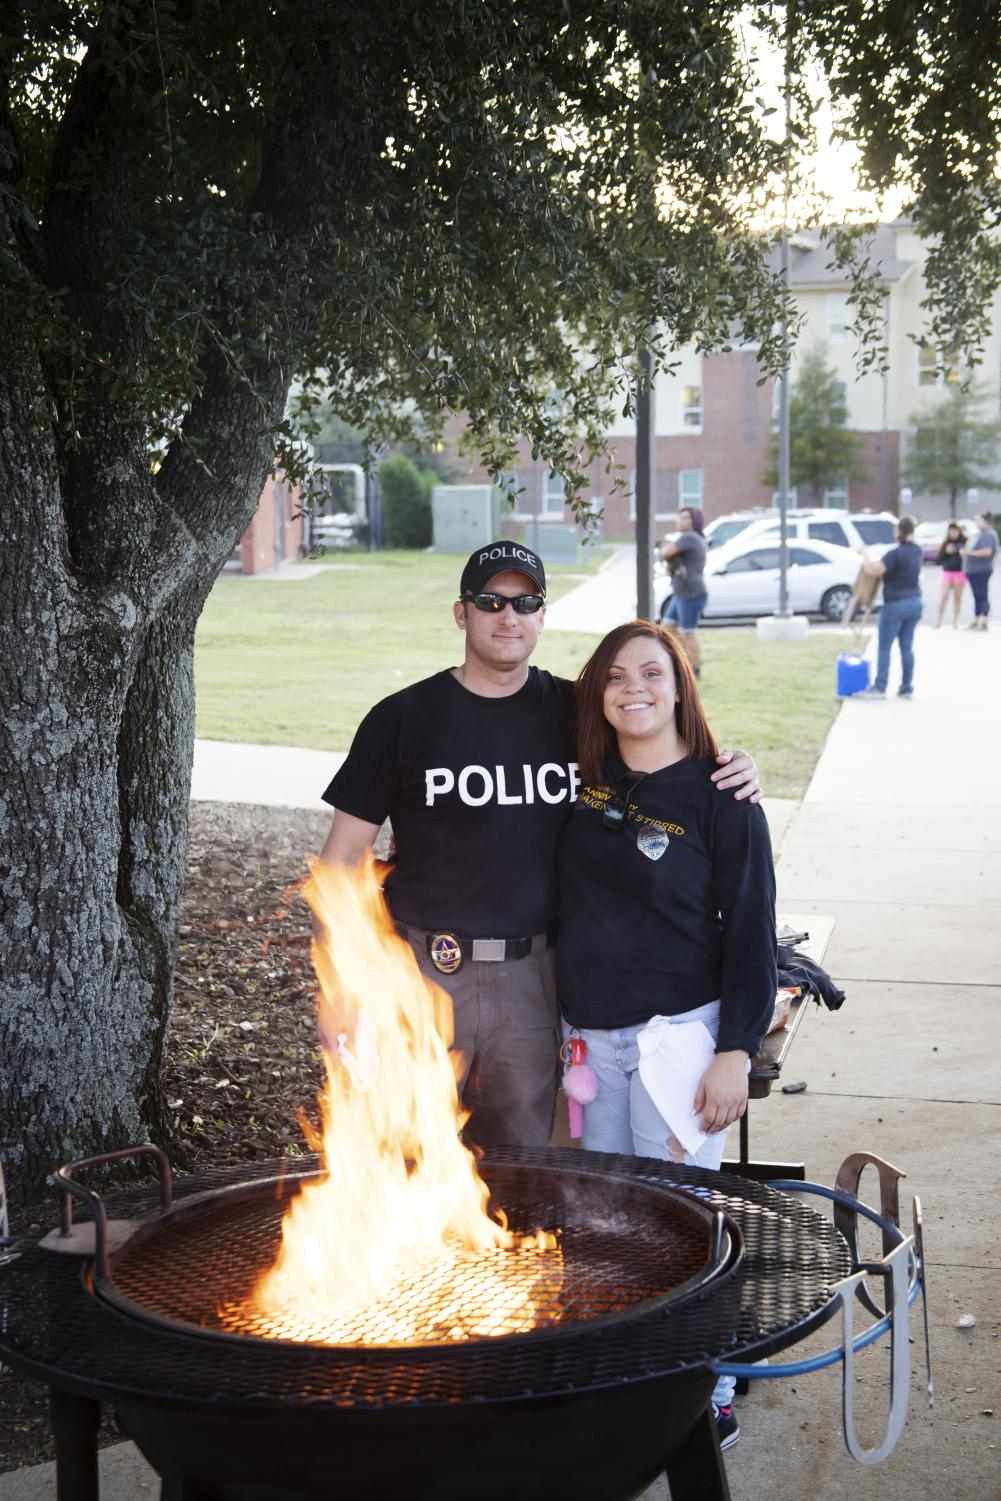 Grillmasters+of+the+night+UPD+Asst.+Chief+of+Police+Kyle+Lowe+and+intern+Dacia+McDuffie+pose+for+a+picture.+East+Texan+Photo+%7C+John+Parsons+